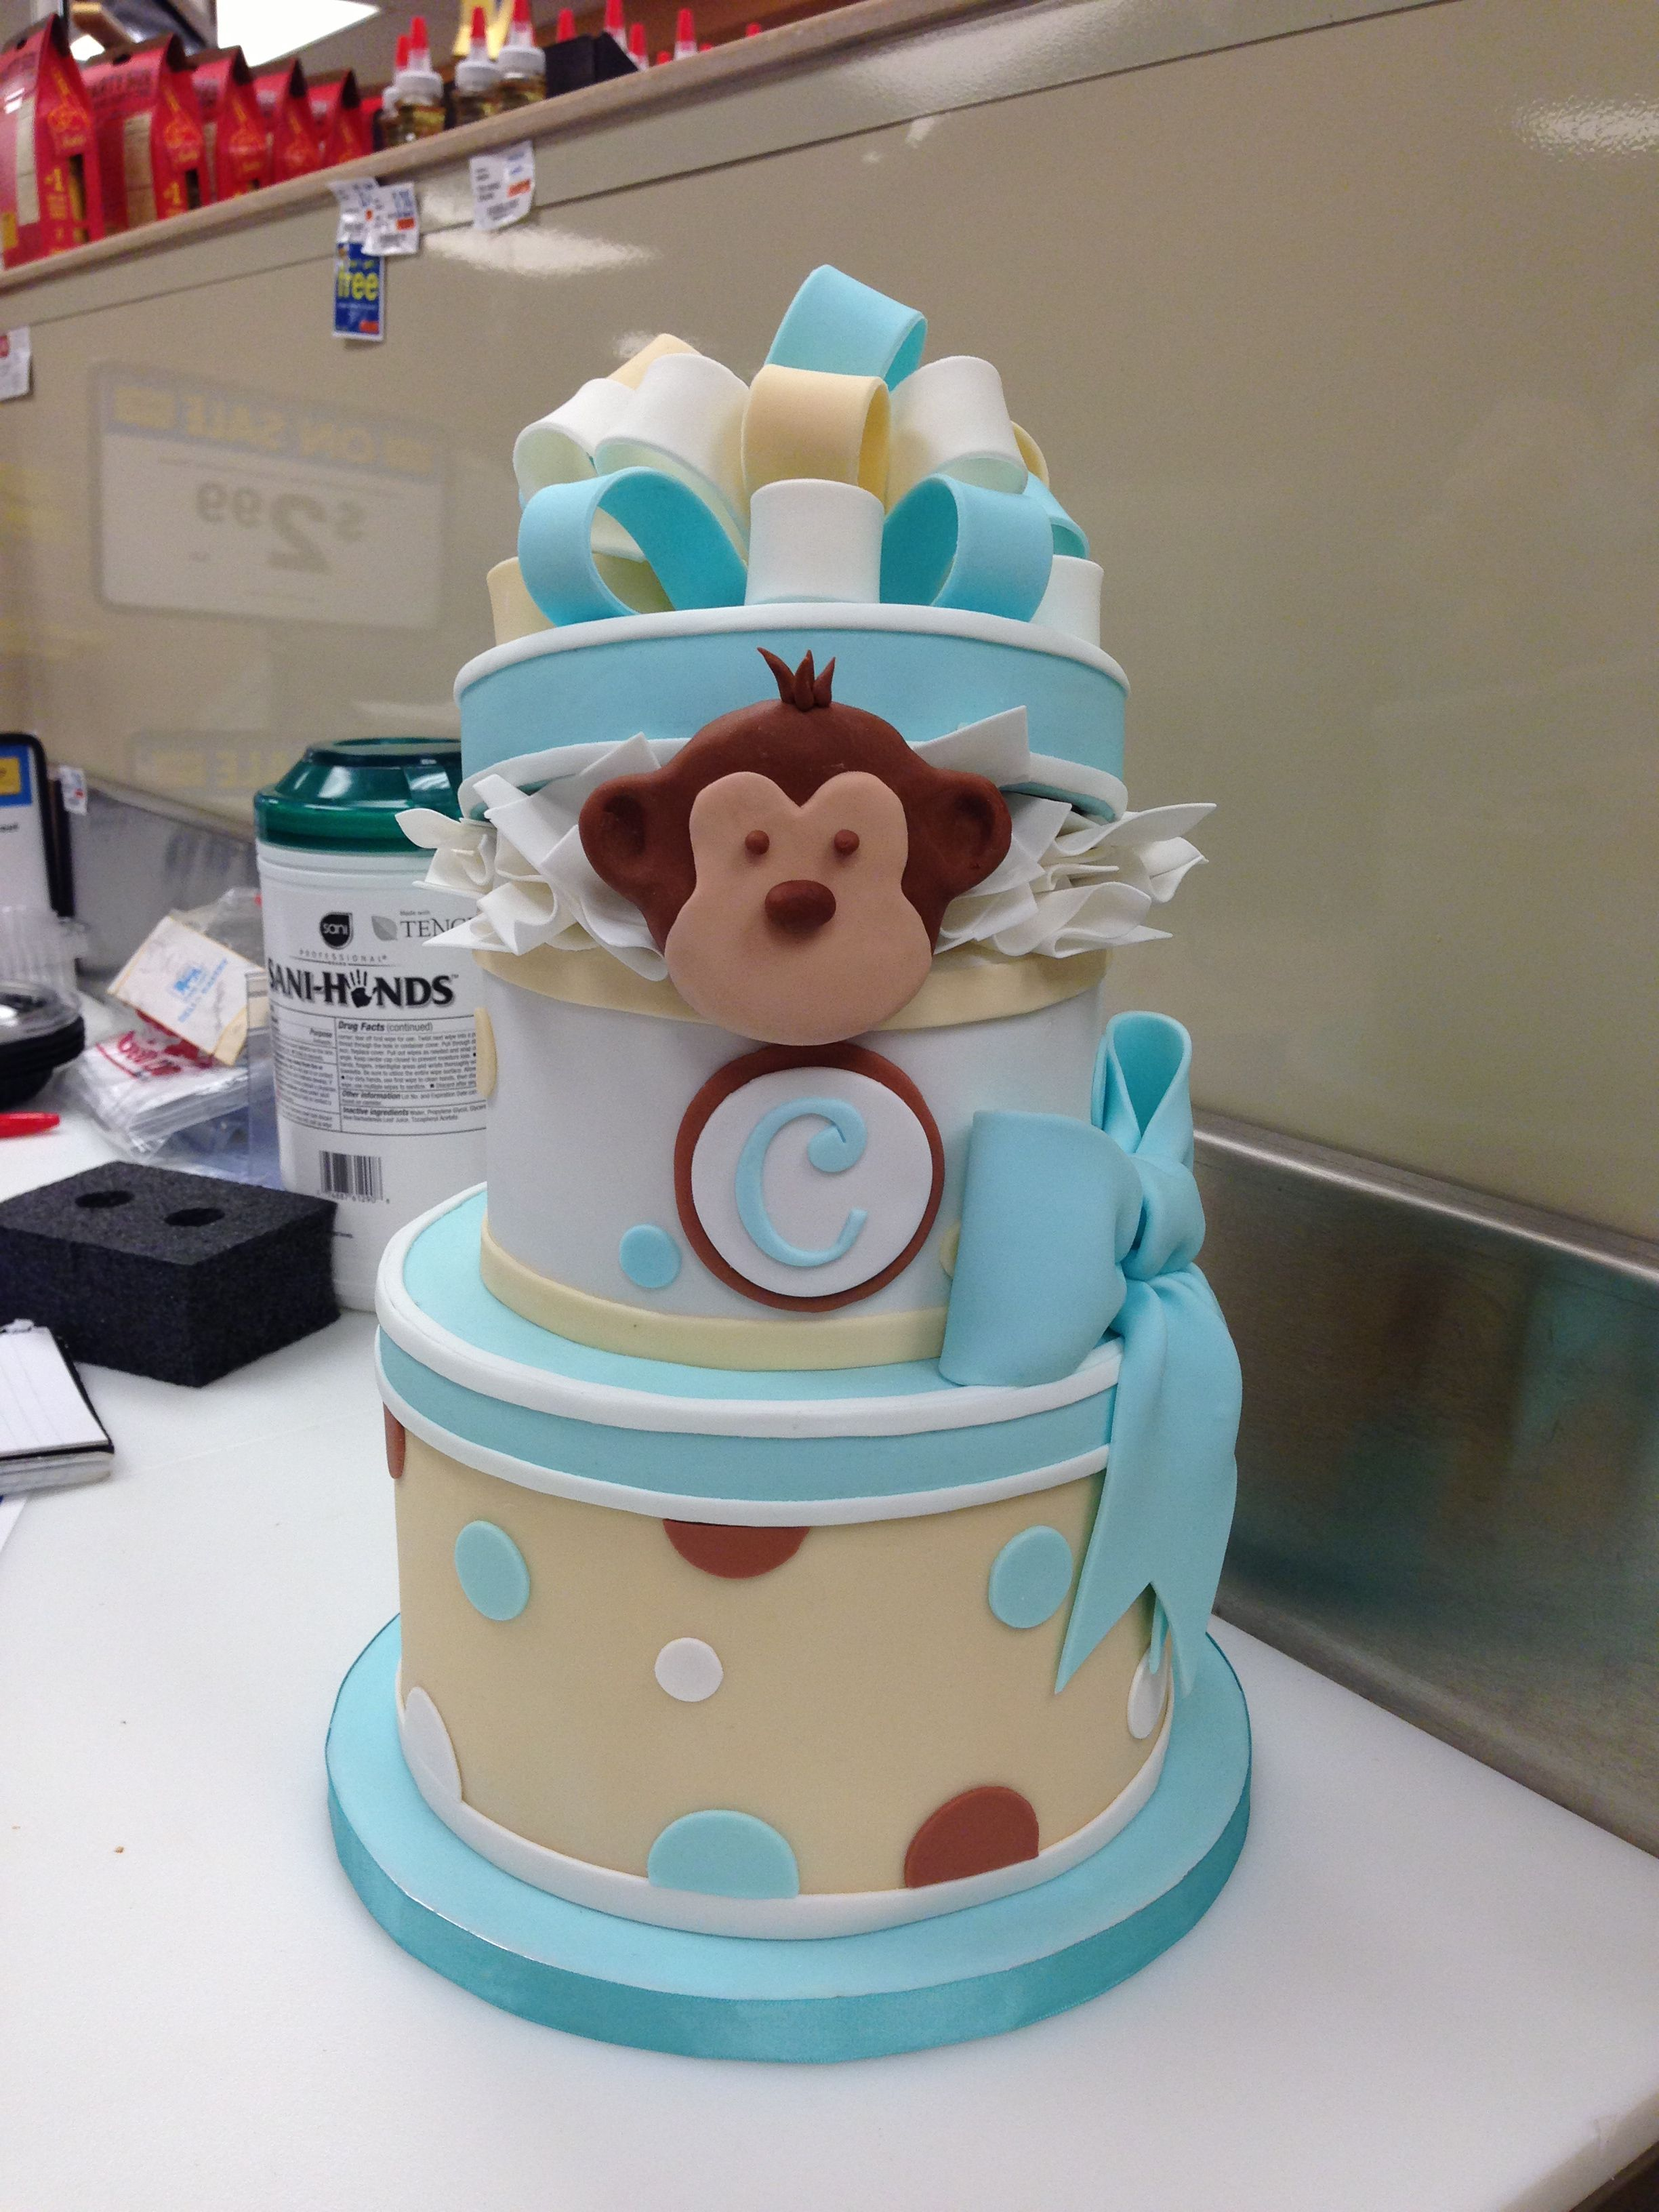 Baby shower cake I made.